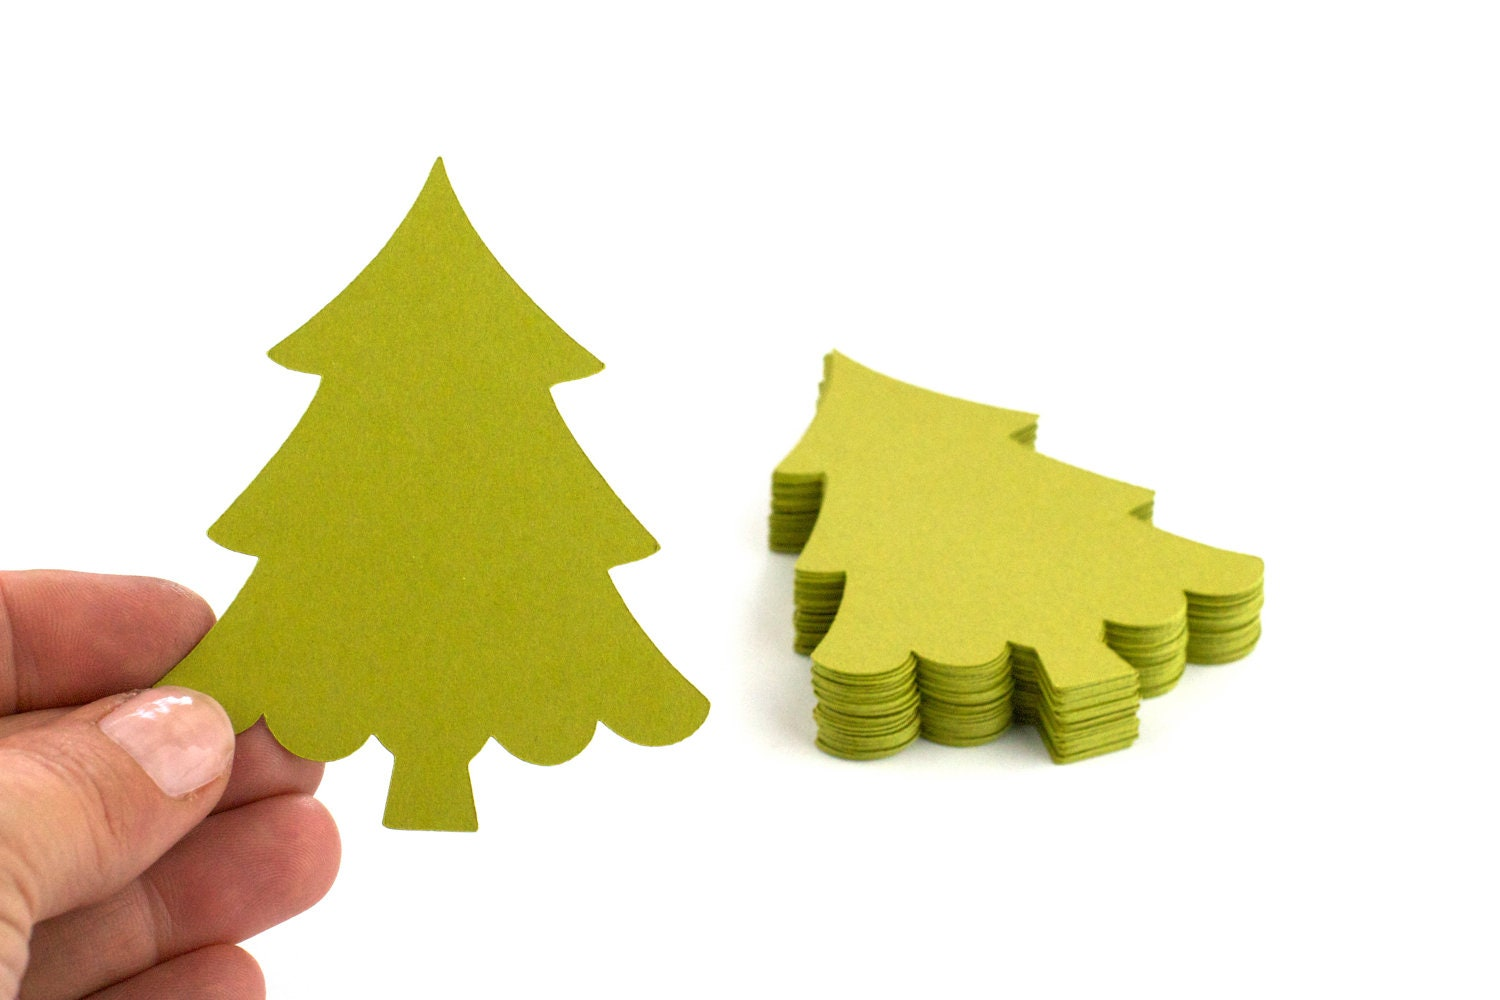 24 Christmas Tree Die Cuts - 3 x 2.5 - Perfect for Gift Tags, Journaling Spots, Scrapbooking / Art Projects - ElitePaperie